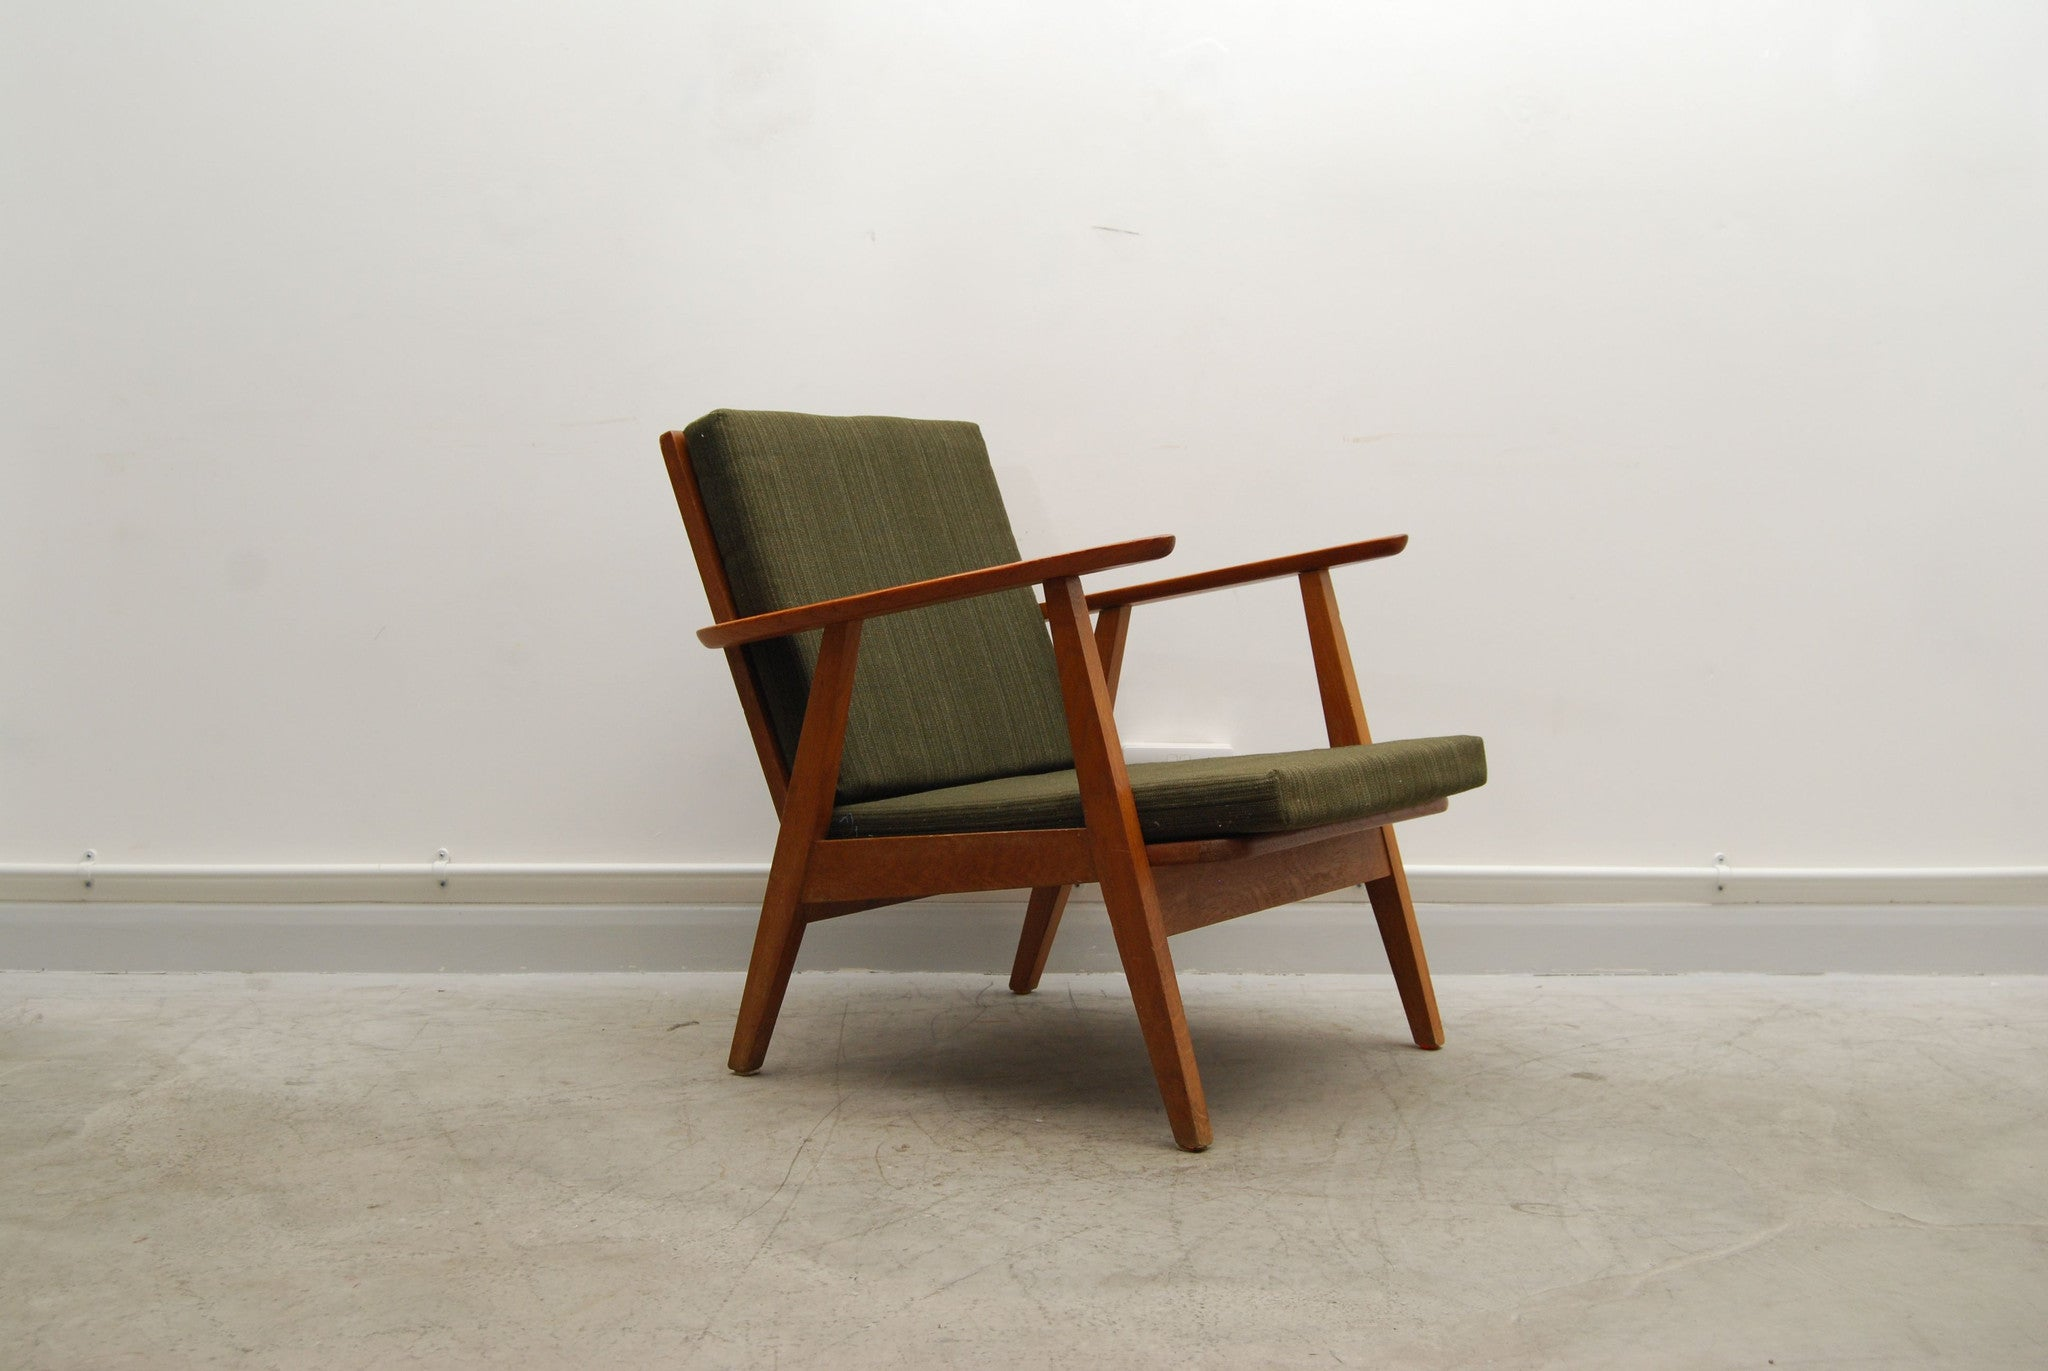 Teak lounge chair with forest green cushions